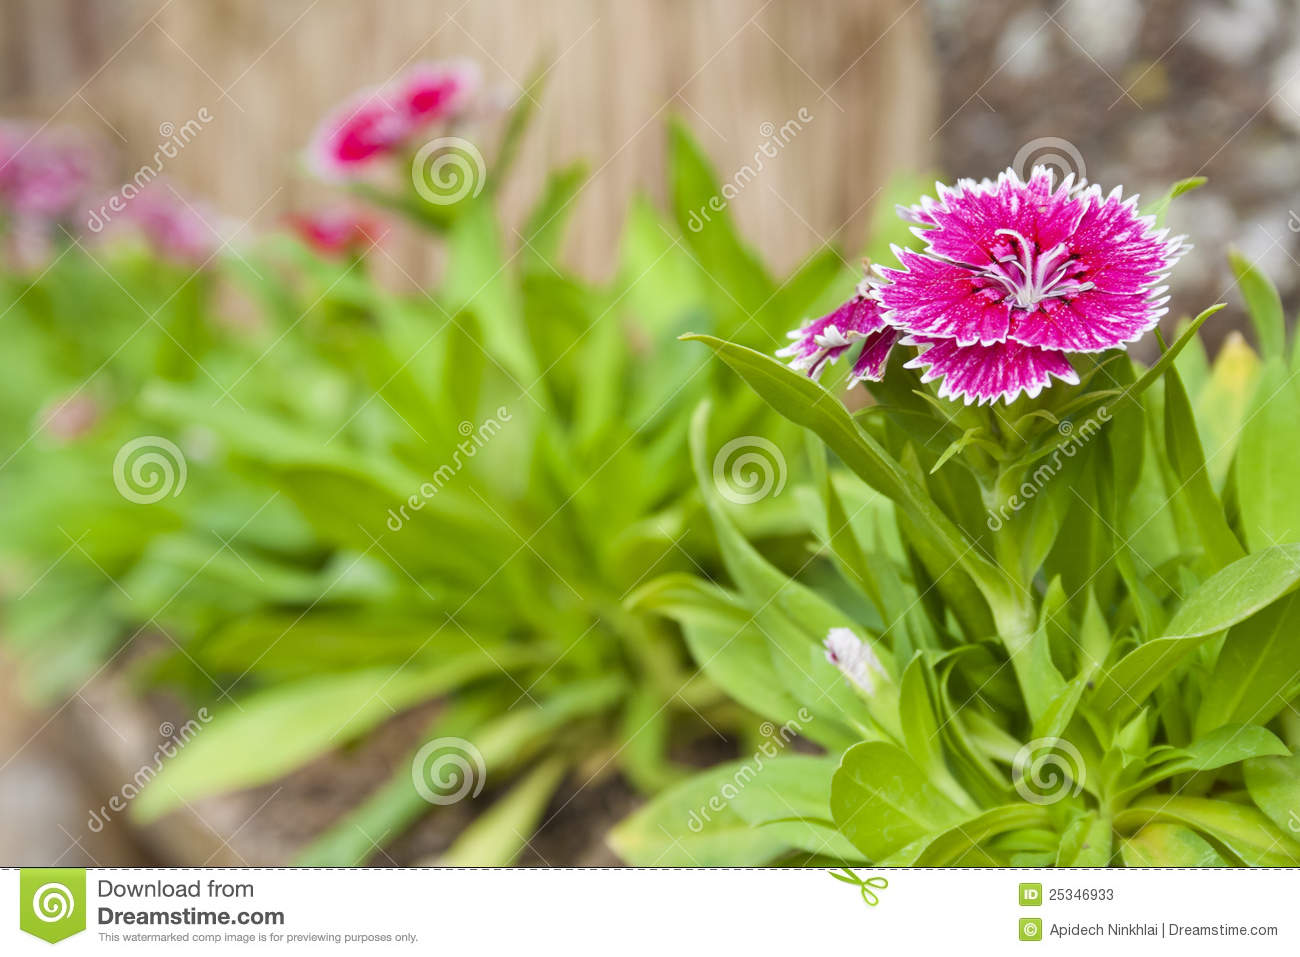 Dianthus Chinensis Or China Pink Flowers Stock Image Image Of